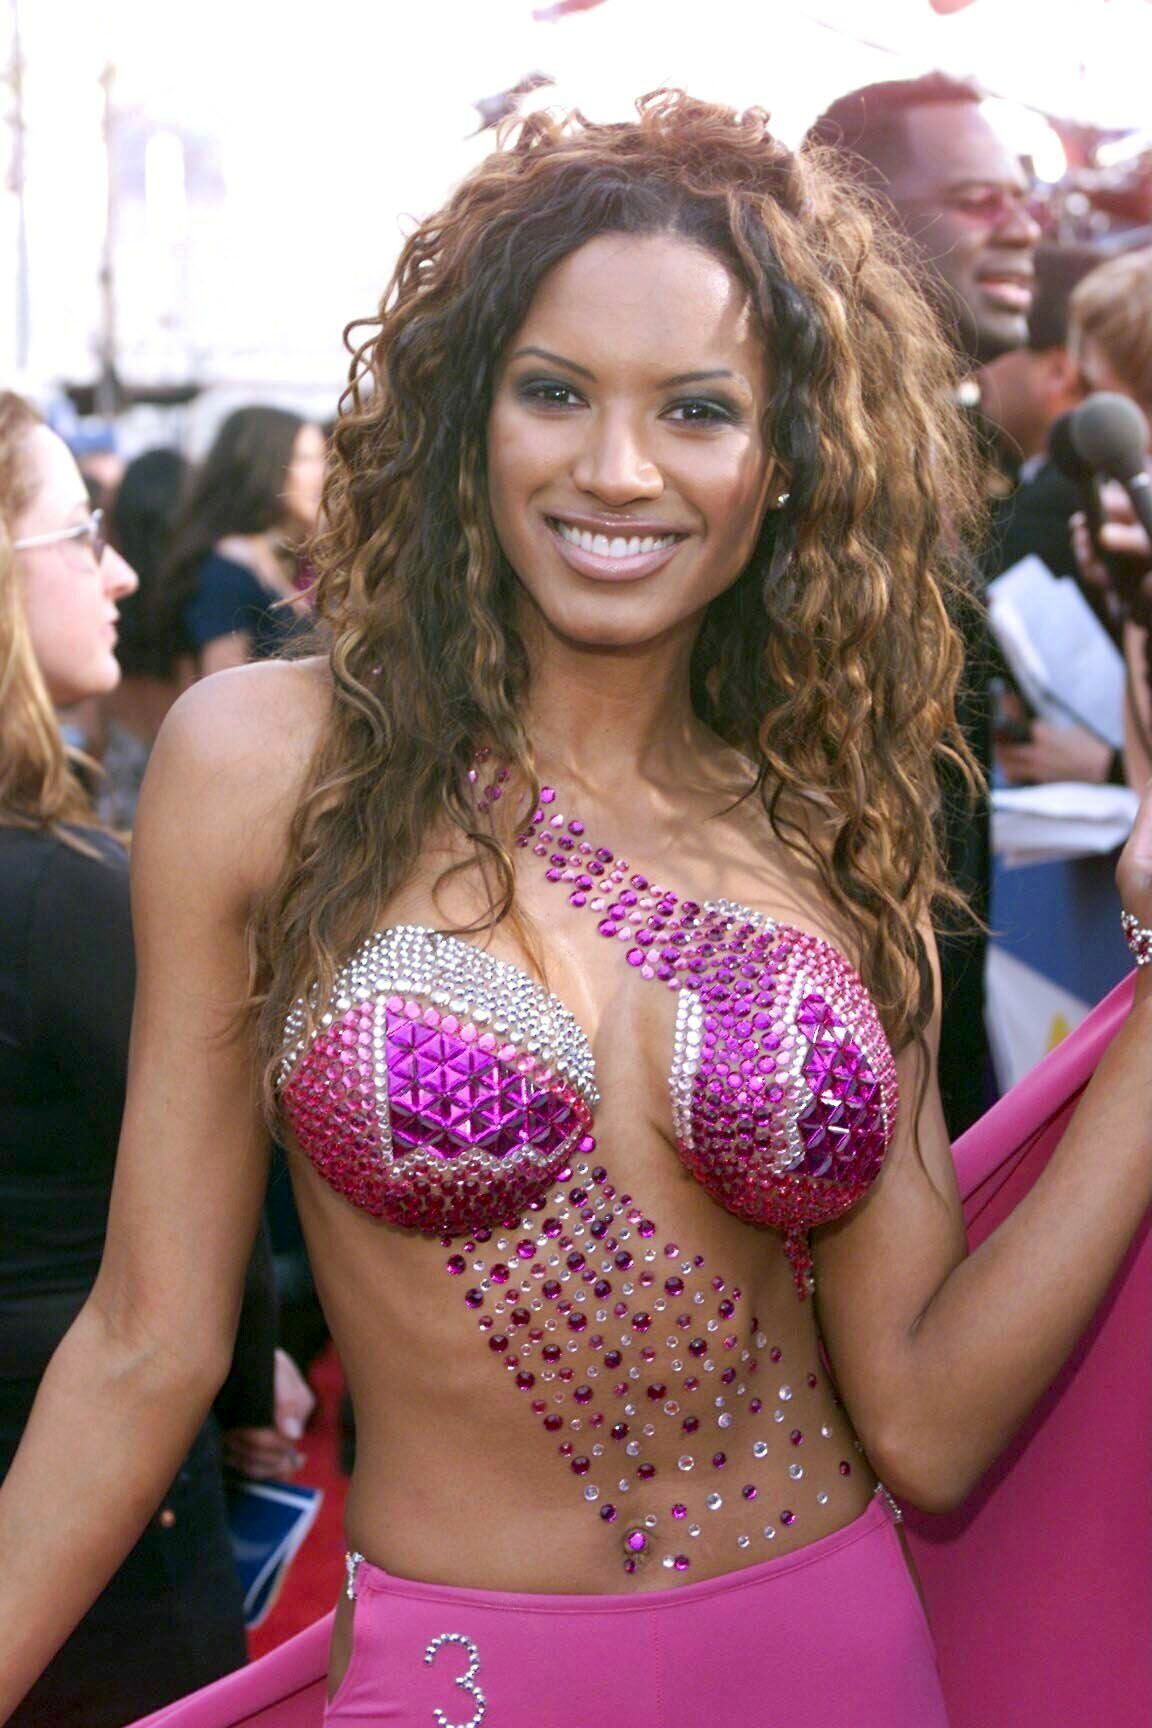 WORST EVER GRAMMY FASHION DISASTERS §§ TRACI BINGHAM The ...